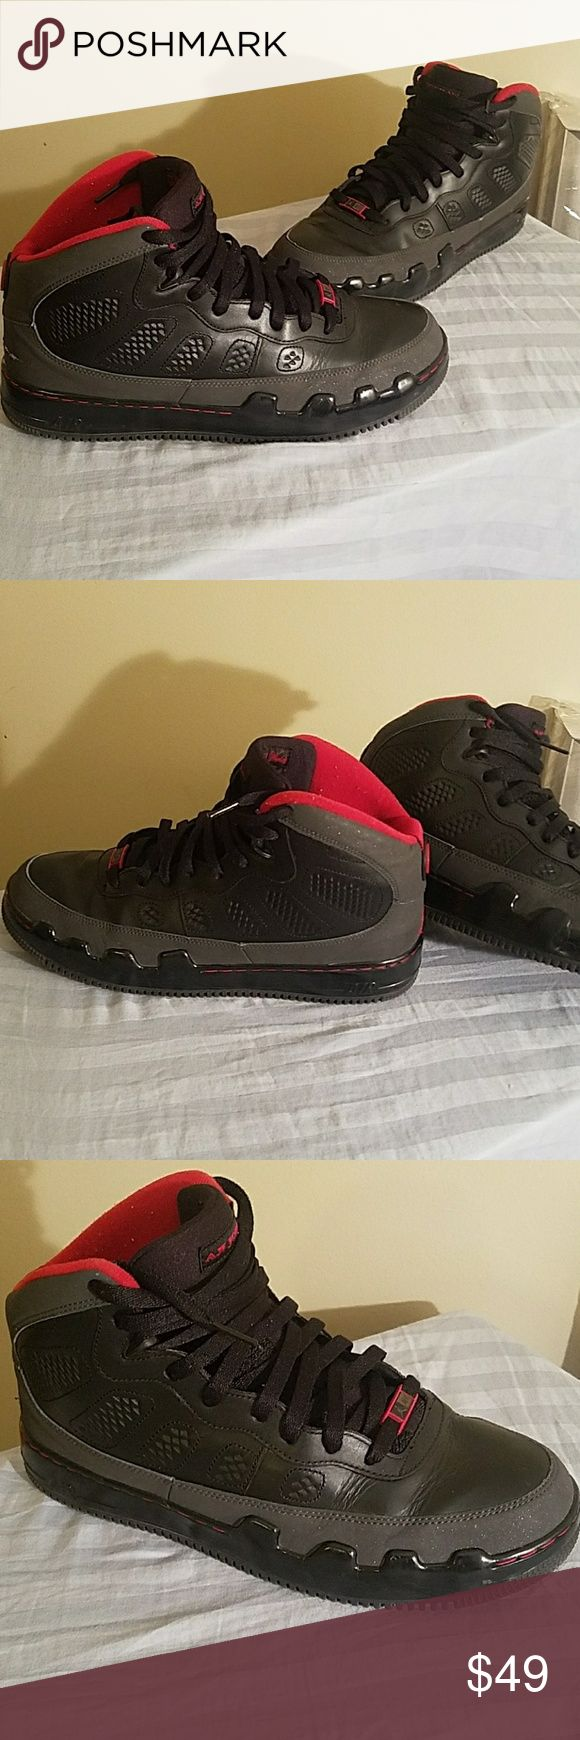 Air Jordan Black Suede Leather 352753 061 Shoes Air Jordans size 11 black and red suede Black charcoal red leather basketball shoes.  Style number 352753 061 Great pre owned shape but a small cut on back heel, see last pics.  Otherwise like new. Air Jordan Shoes